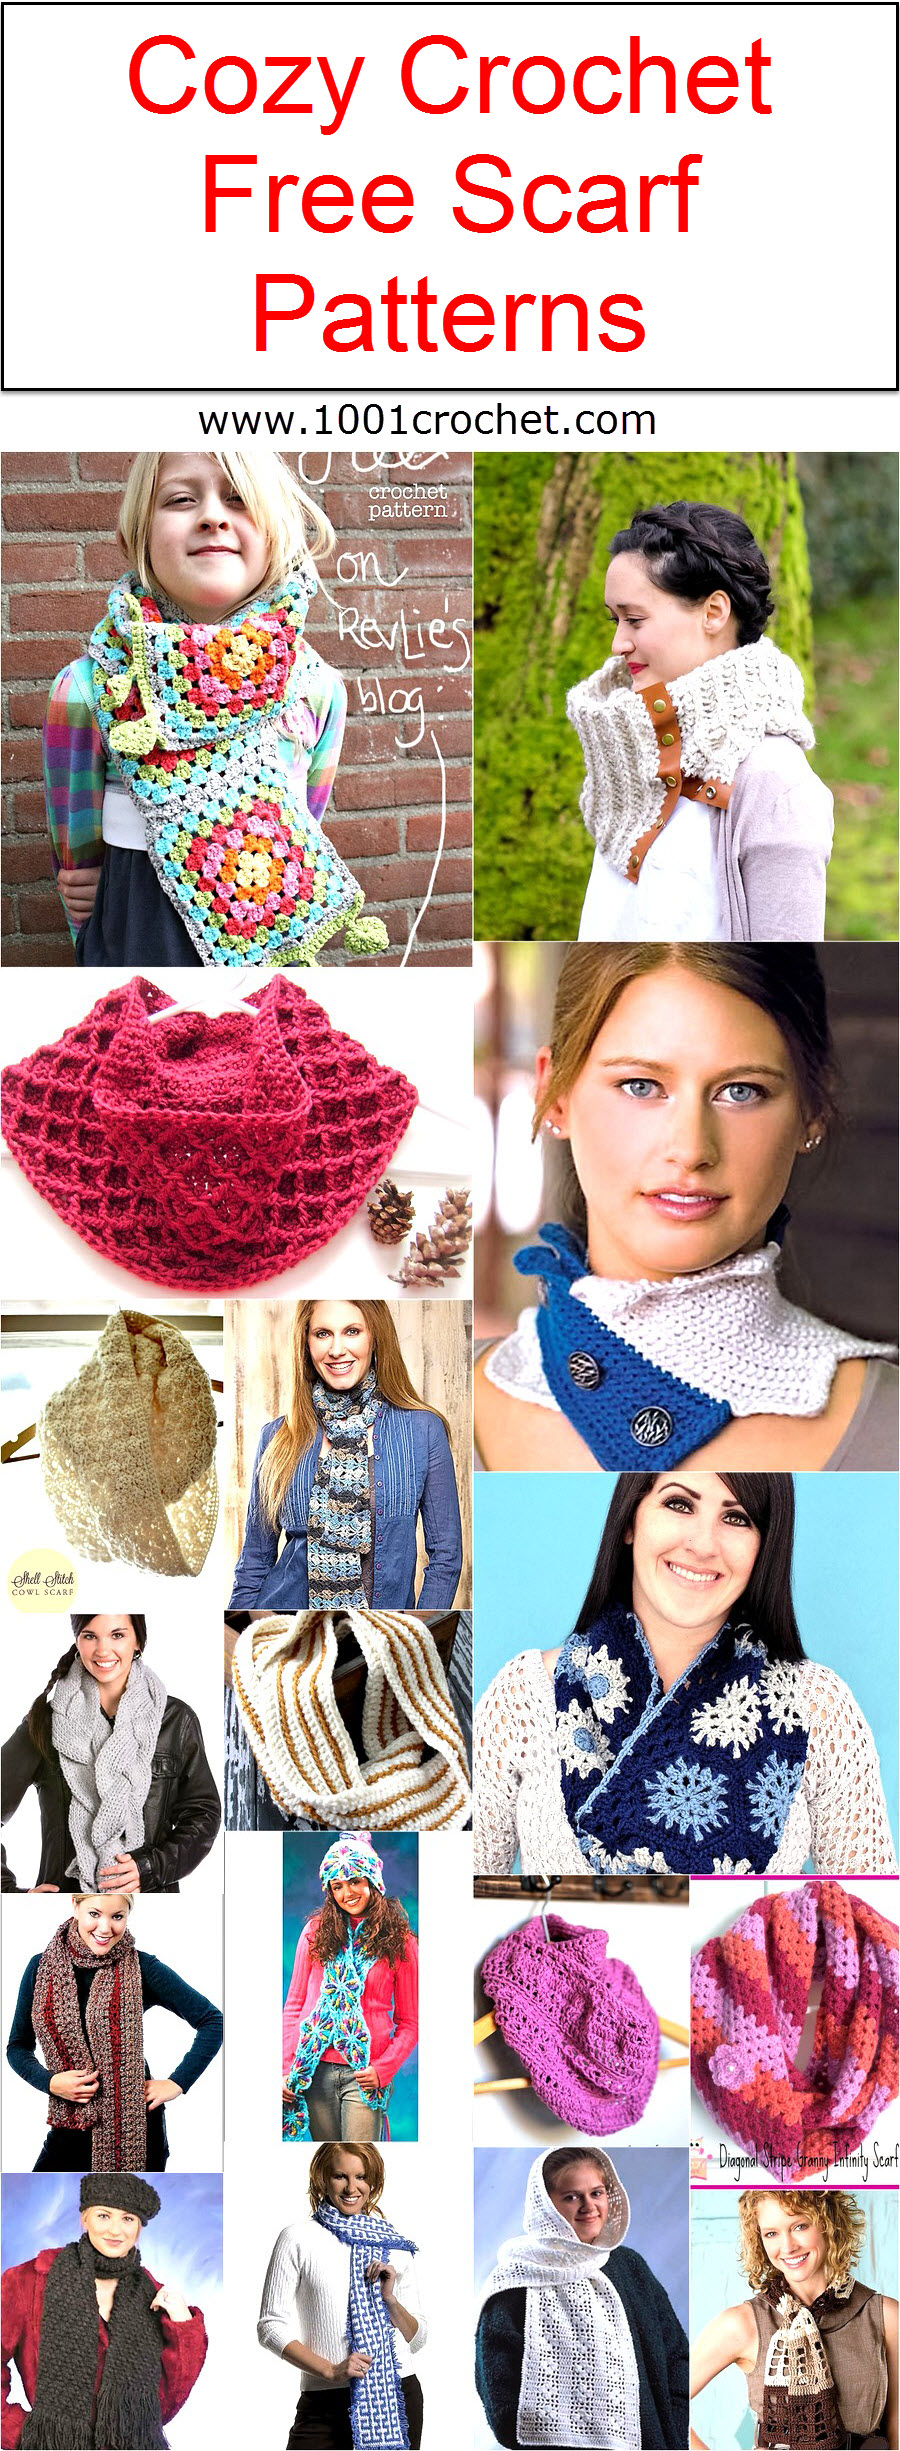 cozy-crochet-free-scarf-patterns